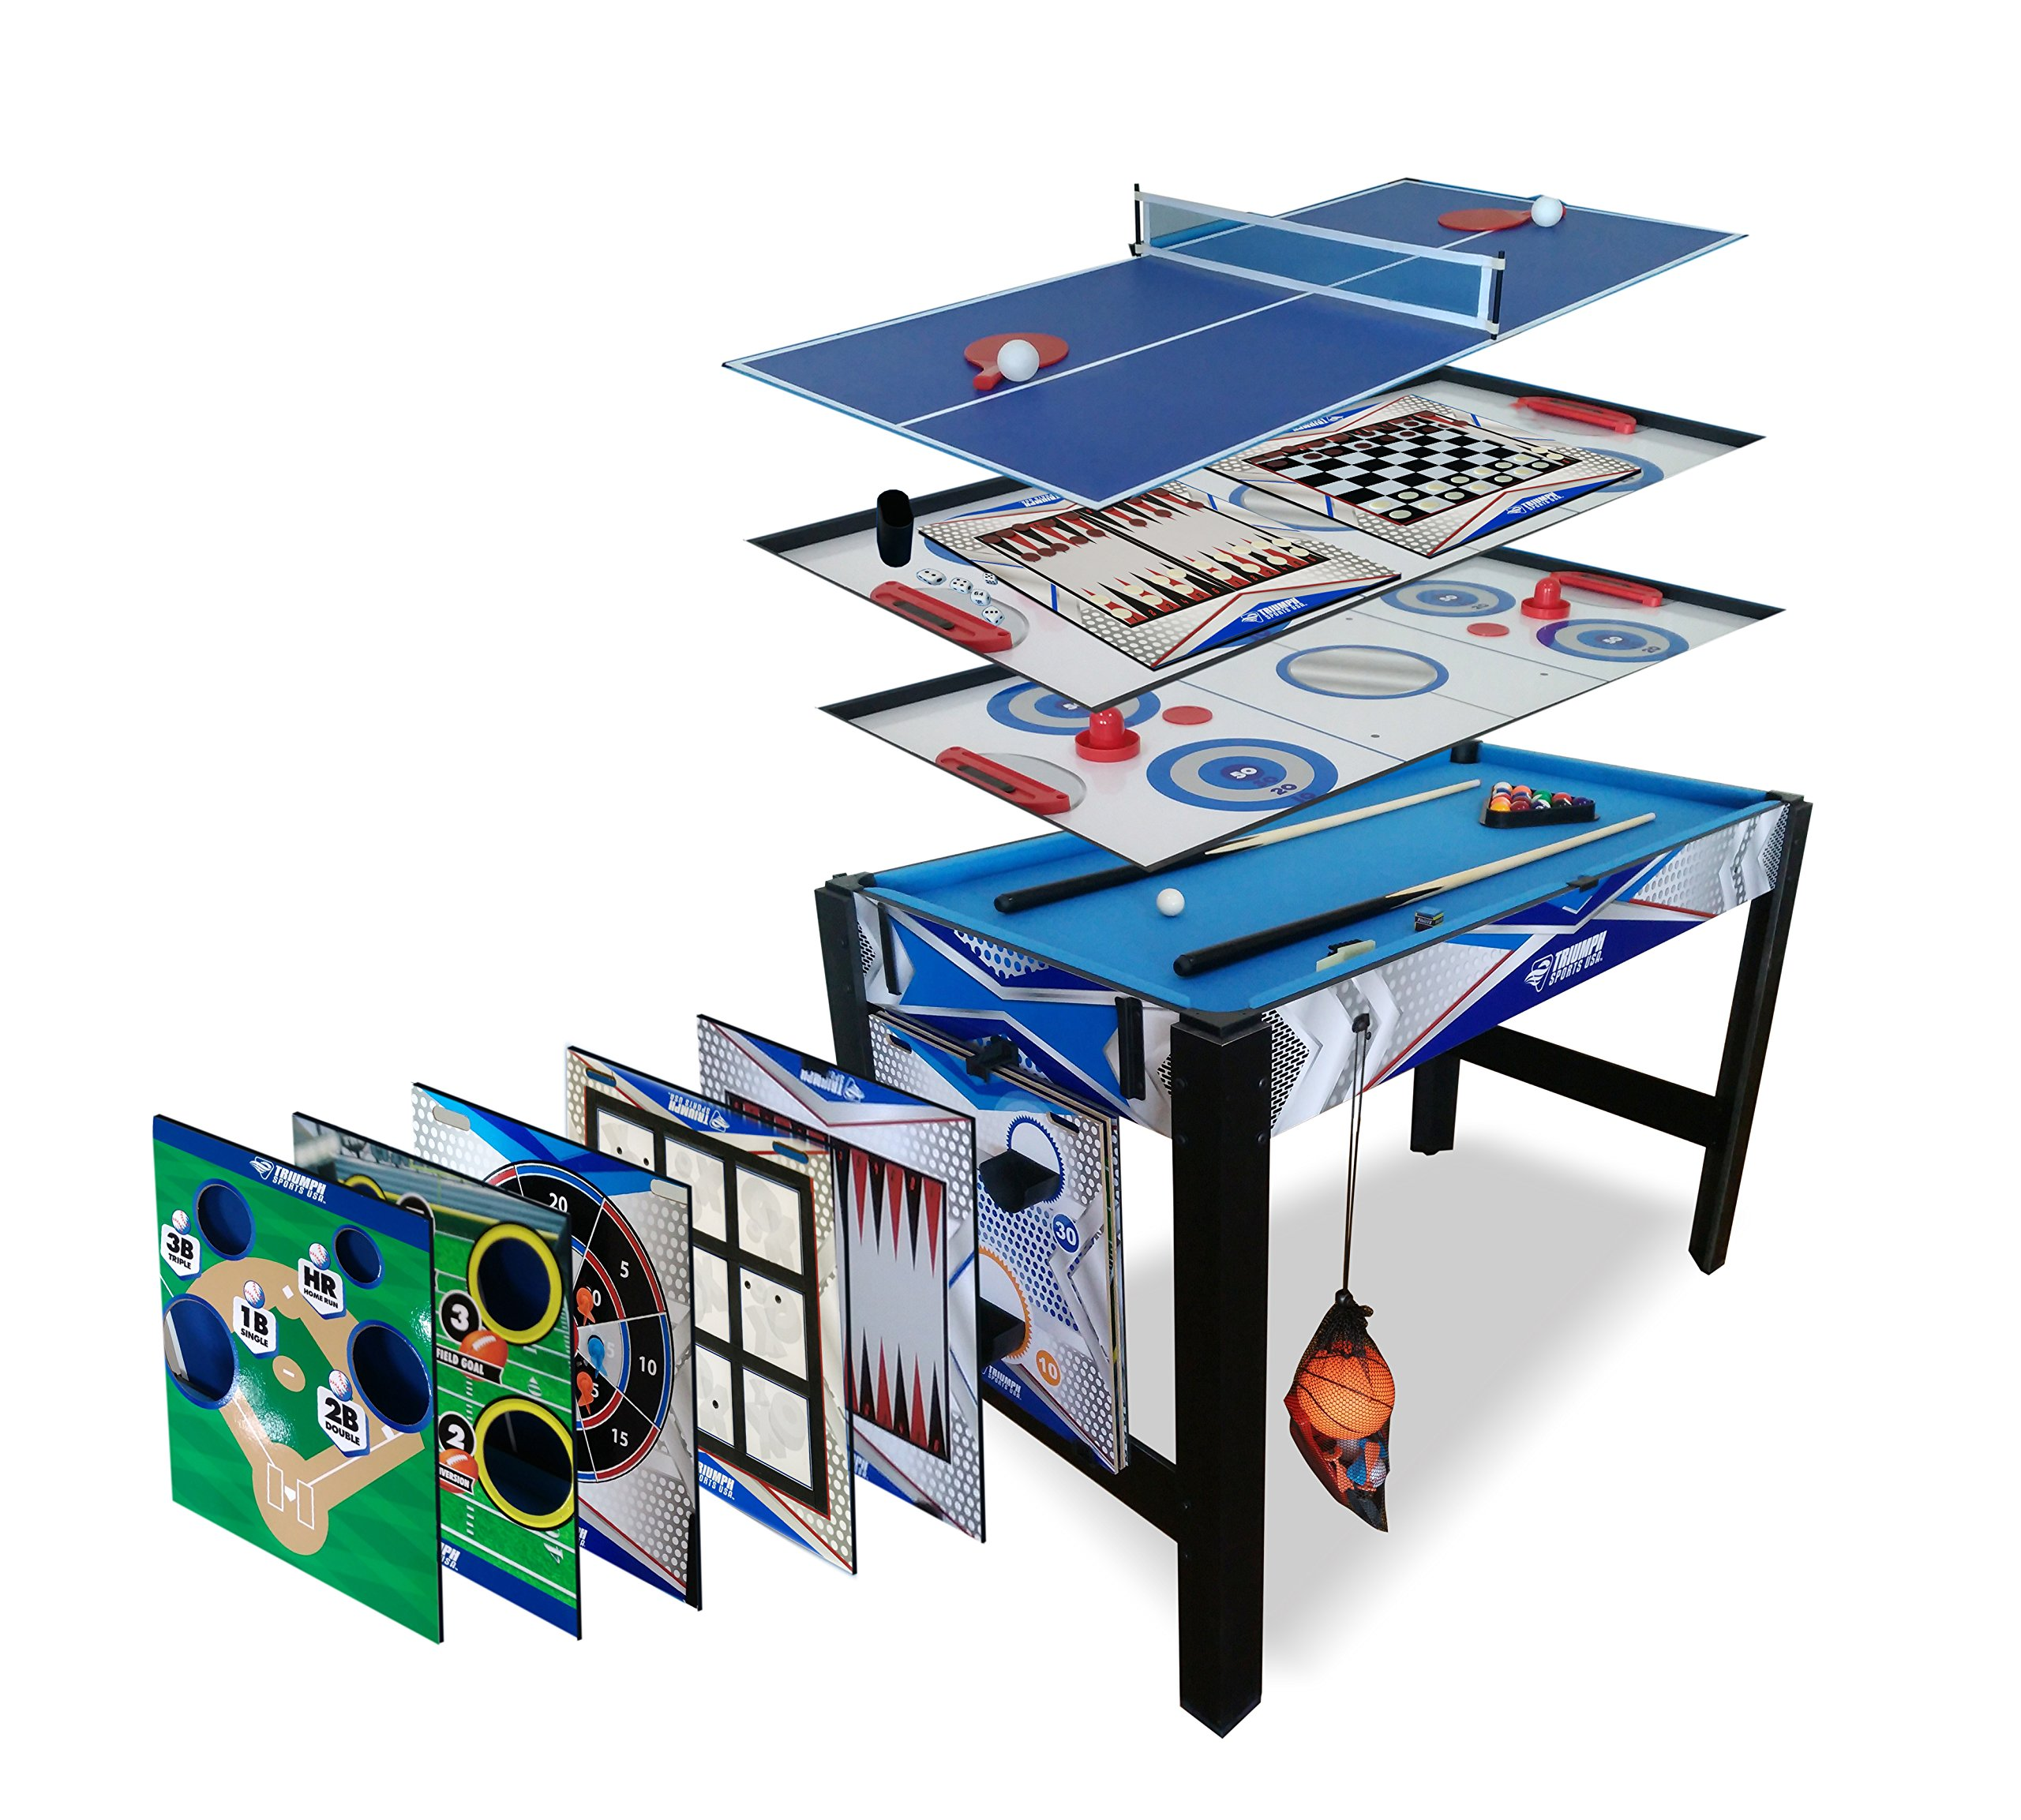 Triumph 13-in-1 Combo Game Table Includes Basketball, Table Tennis, Billiards, Push Hockey, Launch Football, Baseball, Tic-Tac-Toe, and Skee Bean Bag Toss by Triumph Sports